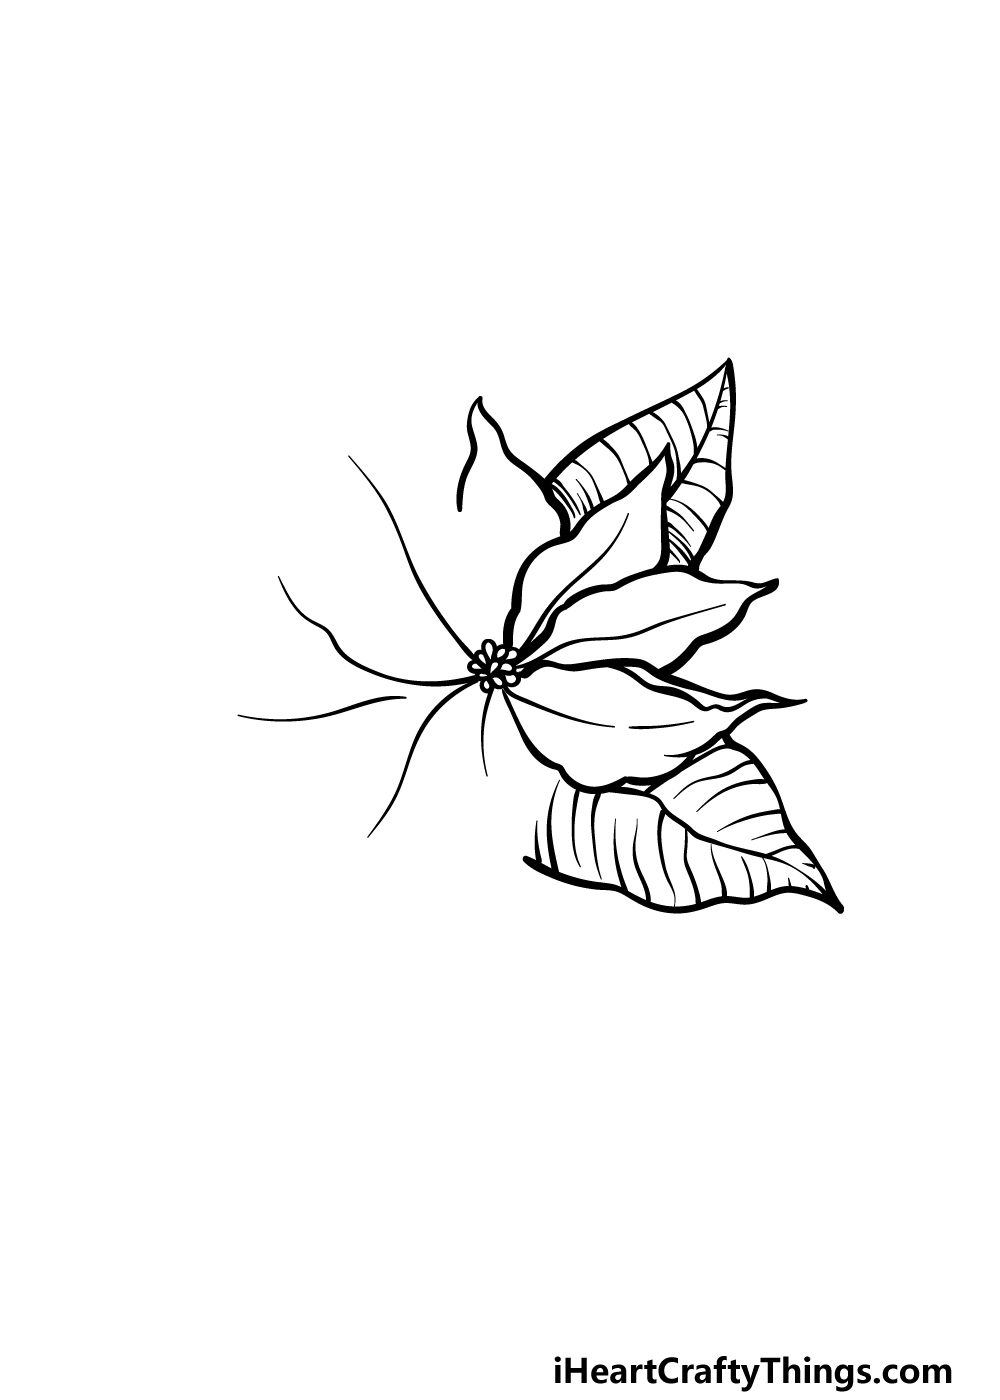 drawing poinsettia step 3